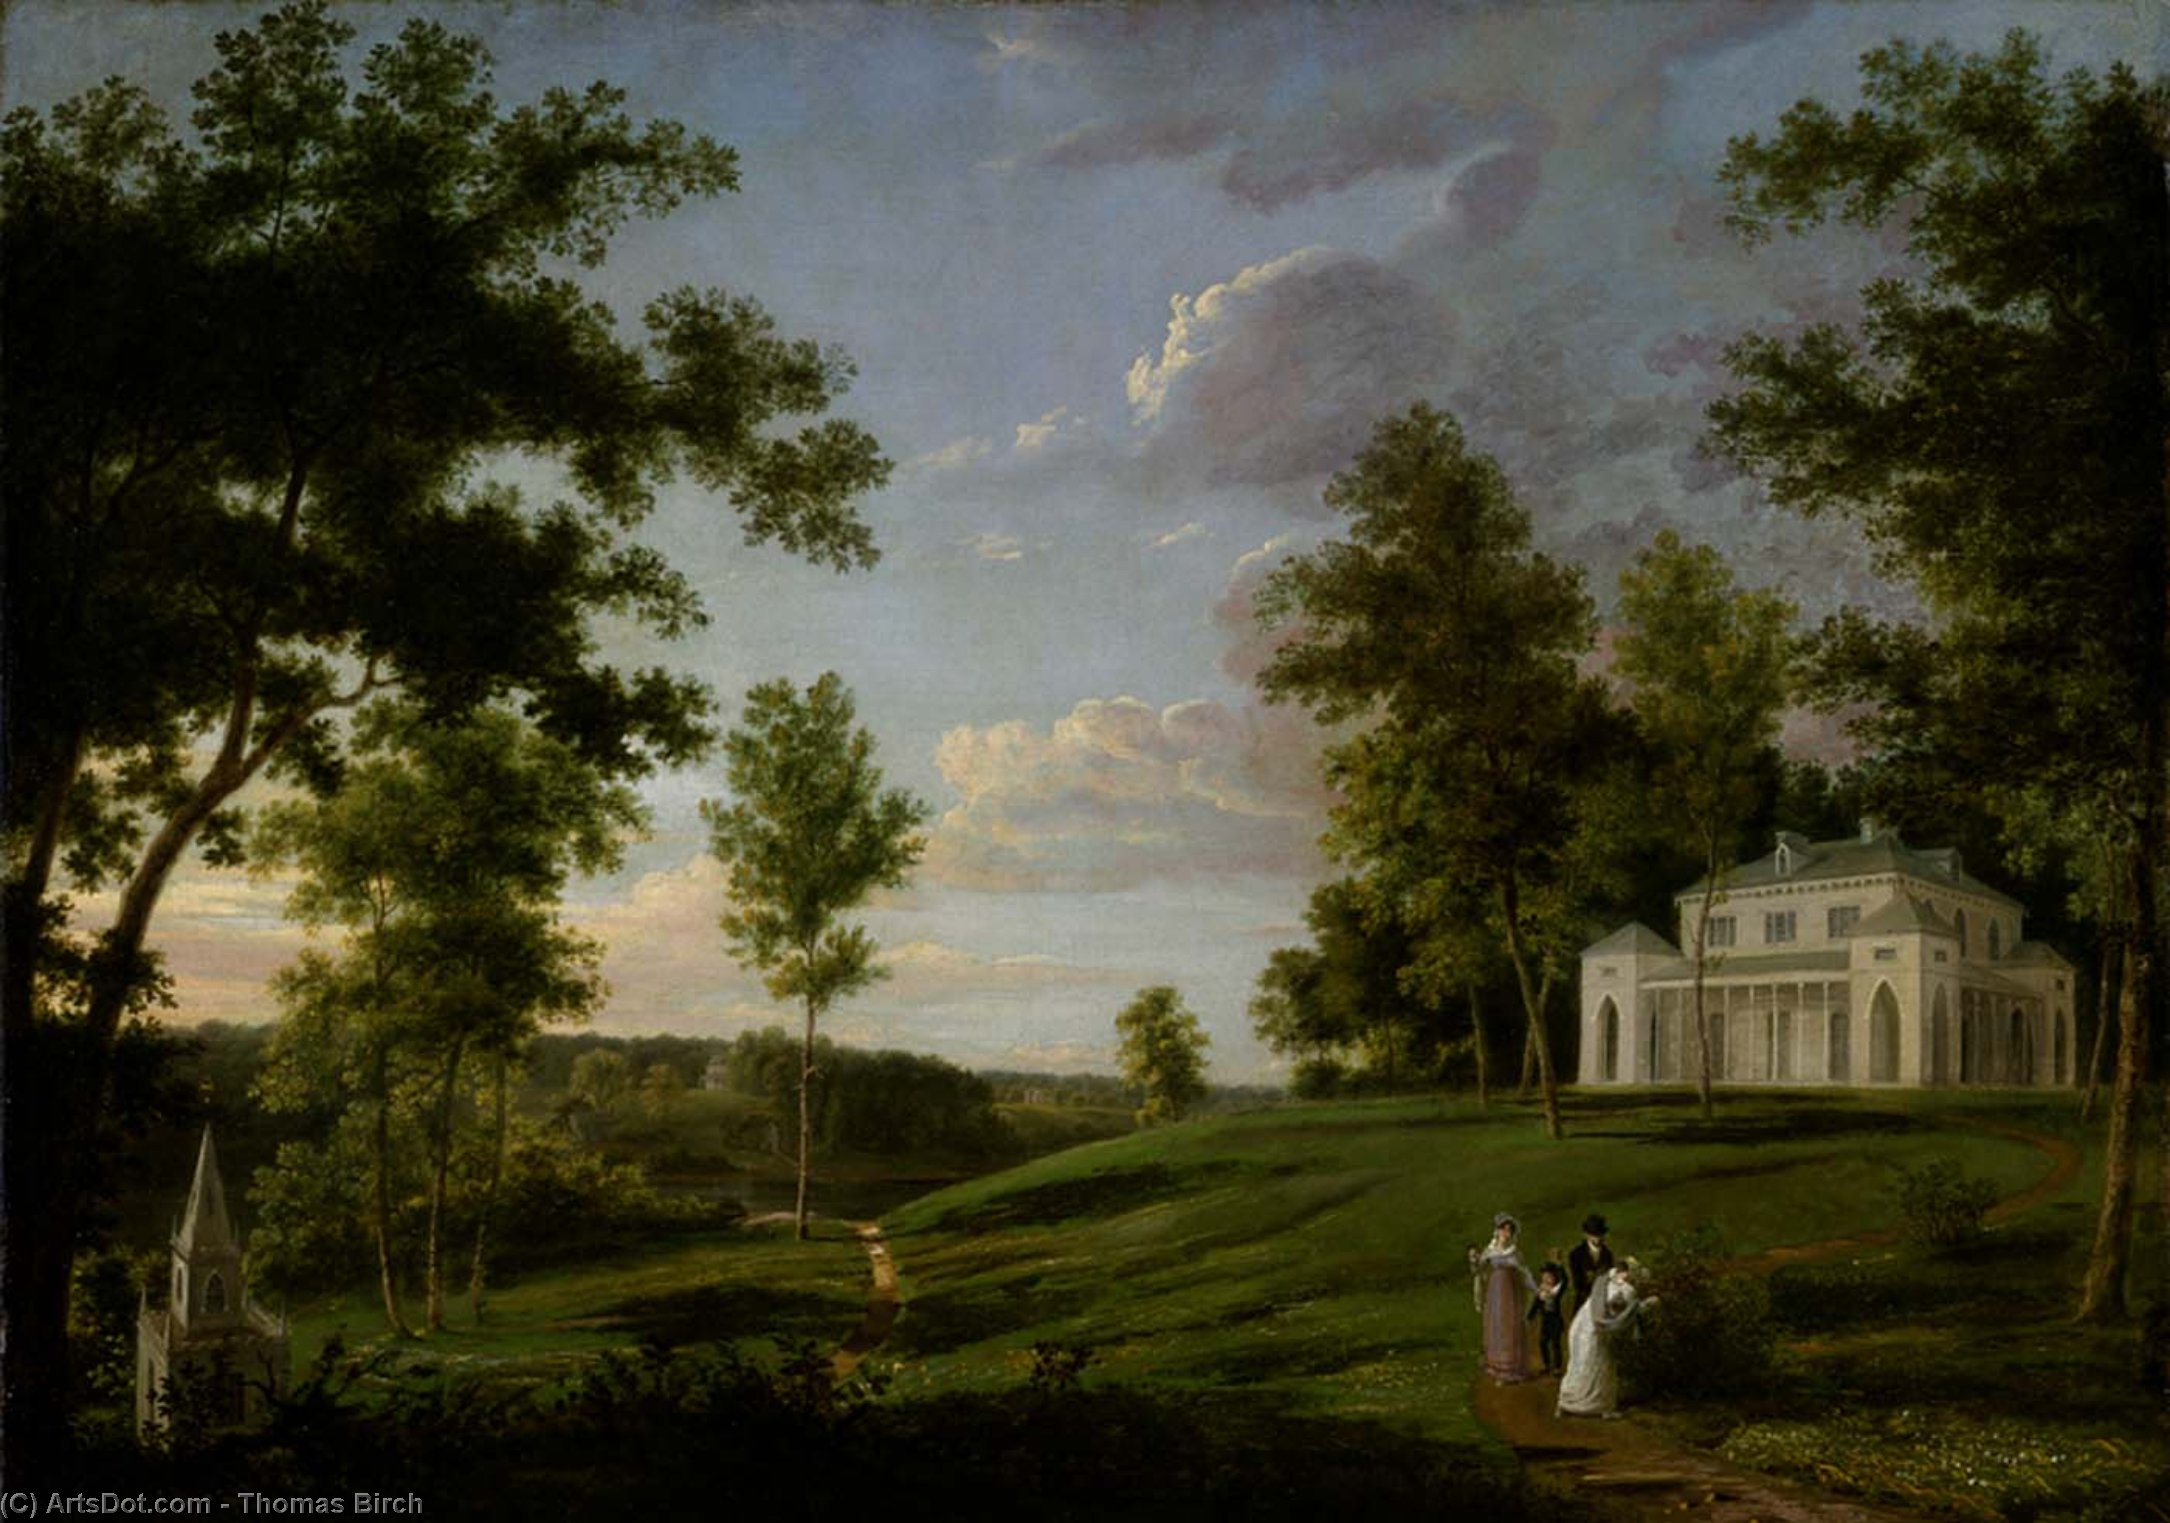 southeast vista sedgeley park , la residenza di campagna di james cowles fisher , Esq ., olio di Thomas Birch  (ordinare Belle Arti stampa fine art Thomas Birch)